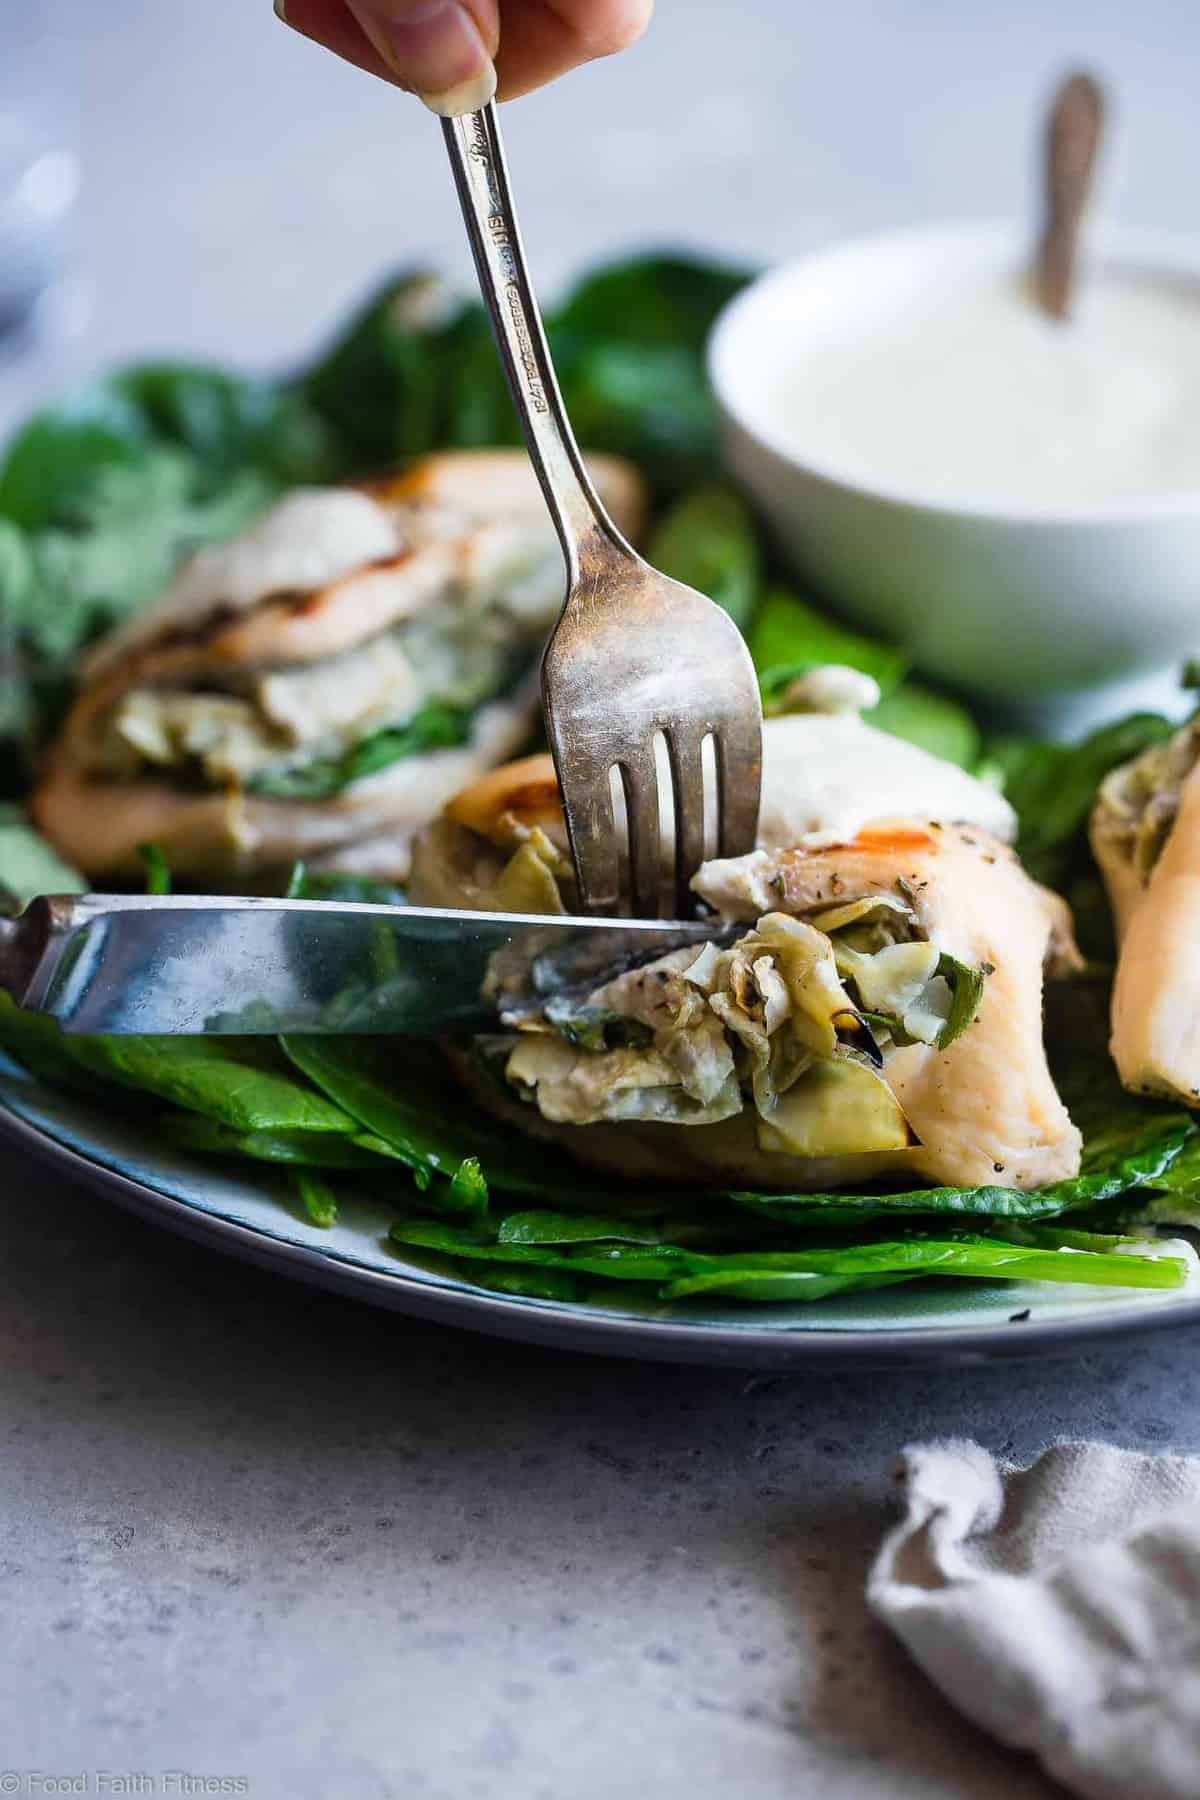 Spinach Artichoke Greek Yogurt Chicken - Chicken is stuffed, grilled and topped with a creamy, Parmesan Greek yogurt sauce! It's a healthy, low carb dinner that's perfect for a weeknight, and only 1 WW Freestyle point! | #Foodfaithfitness | #GreekYogurt #LowCarb #Healthy #Glutenfree #ChickenDinner